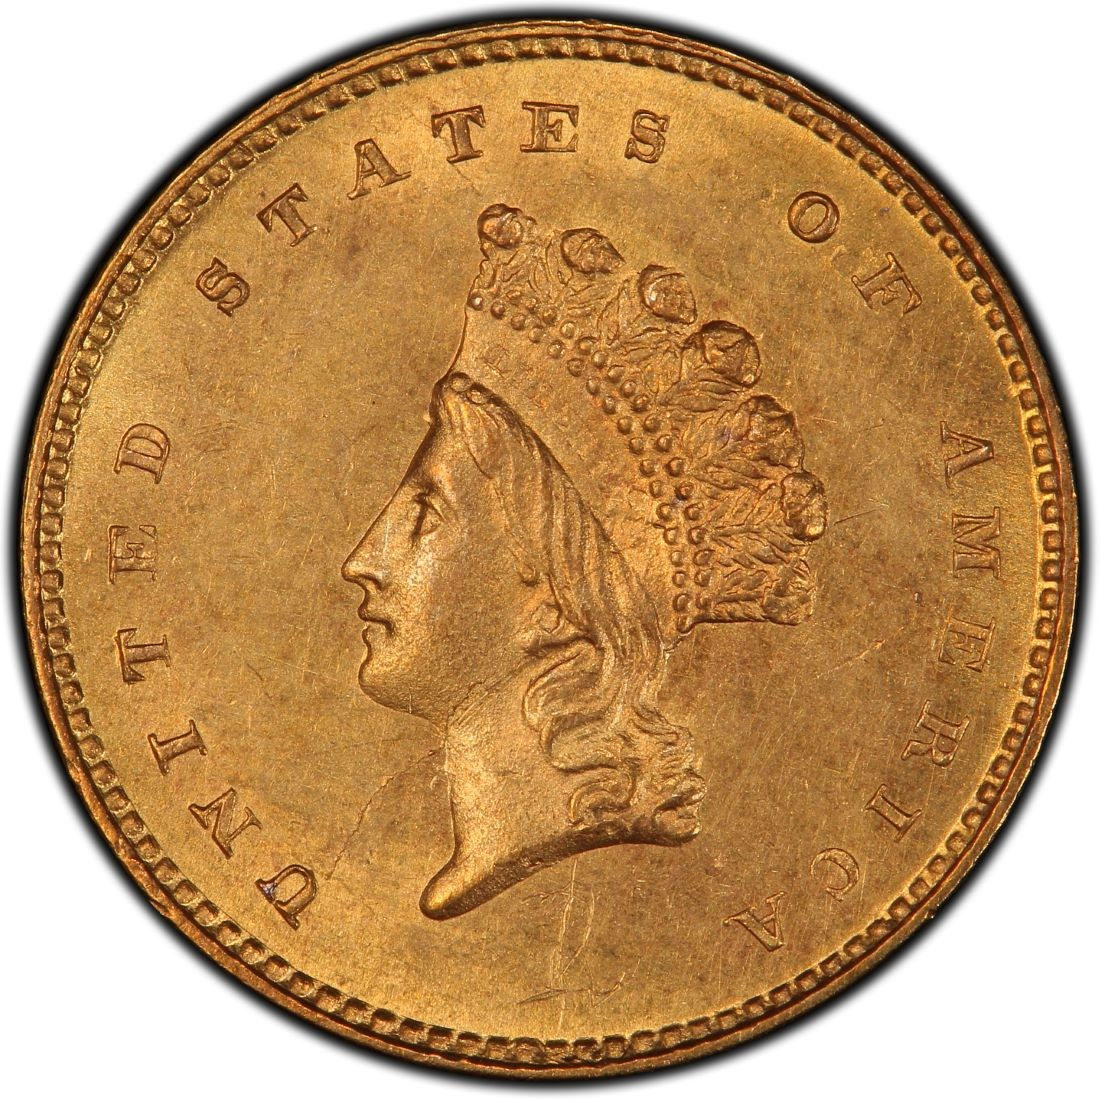 1856 Small Head Indian Princess Gold Dollar Values And